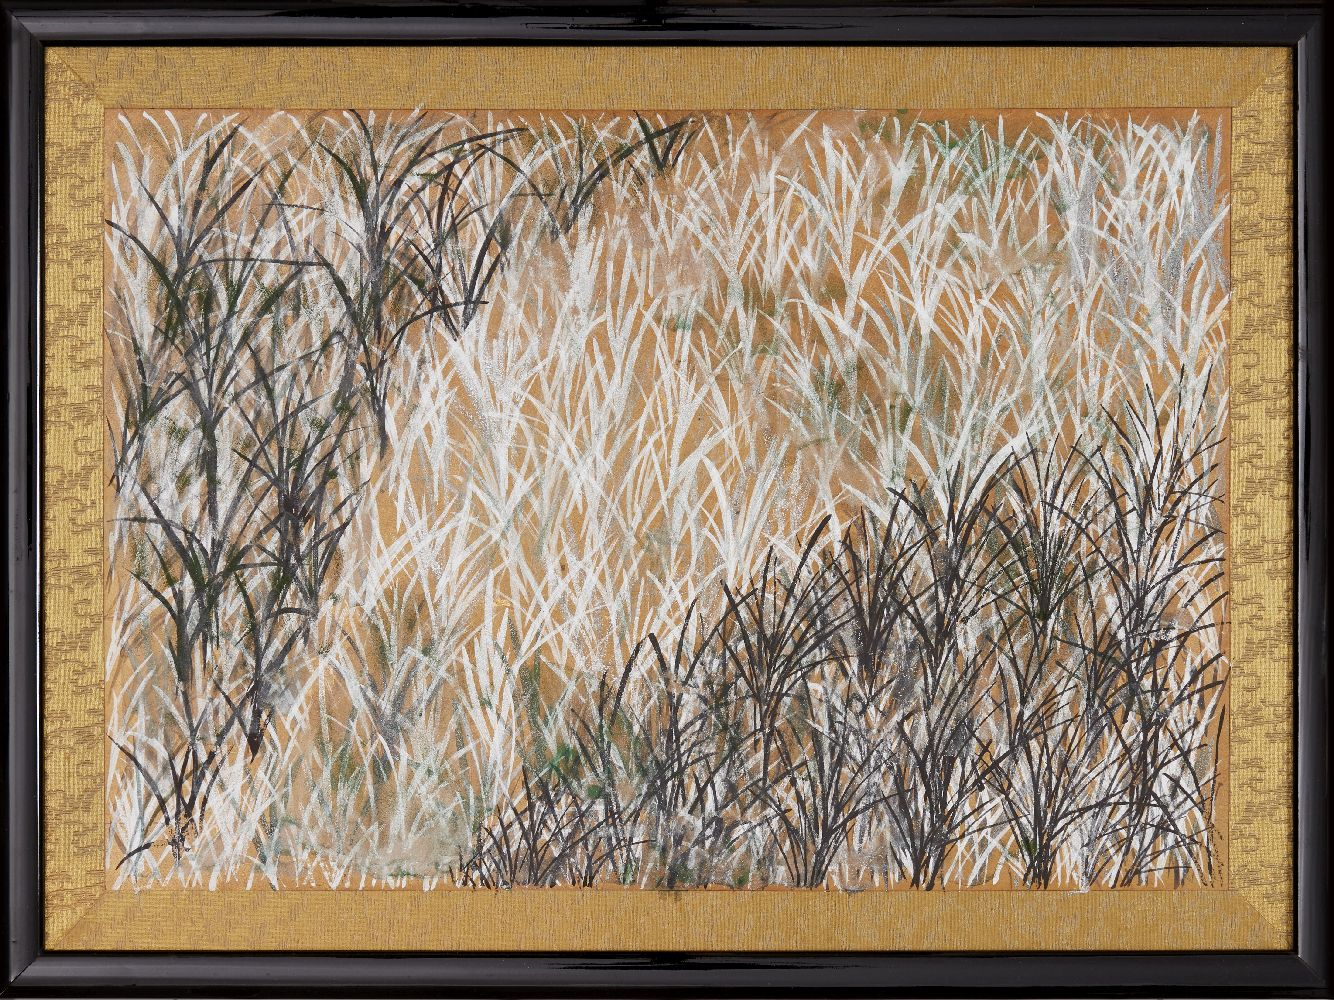 A Japanese painting of seagrass, 20th century, ink and colour on paper, mounted in brocade screen